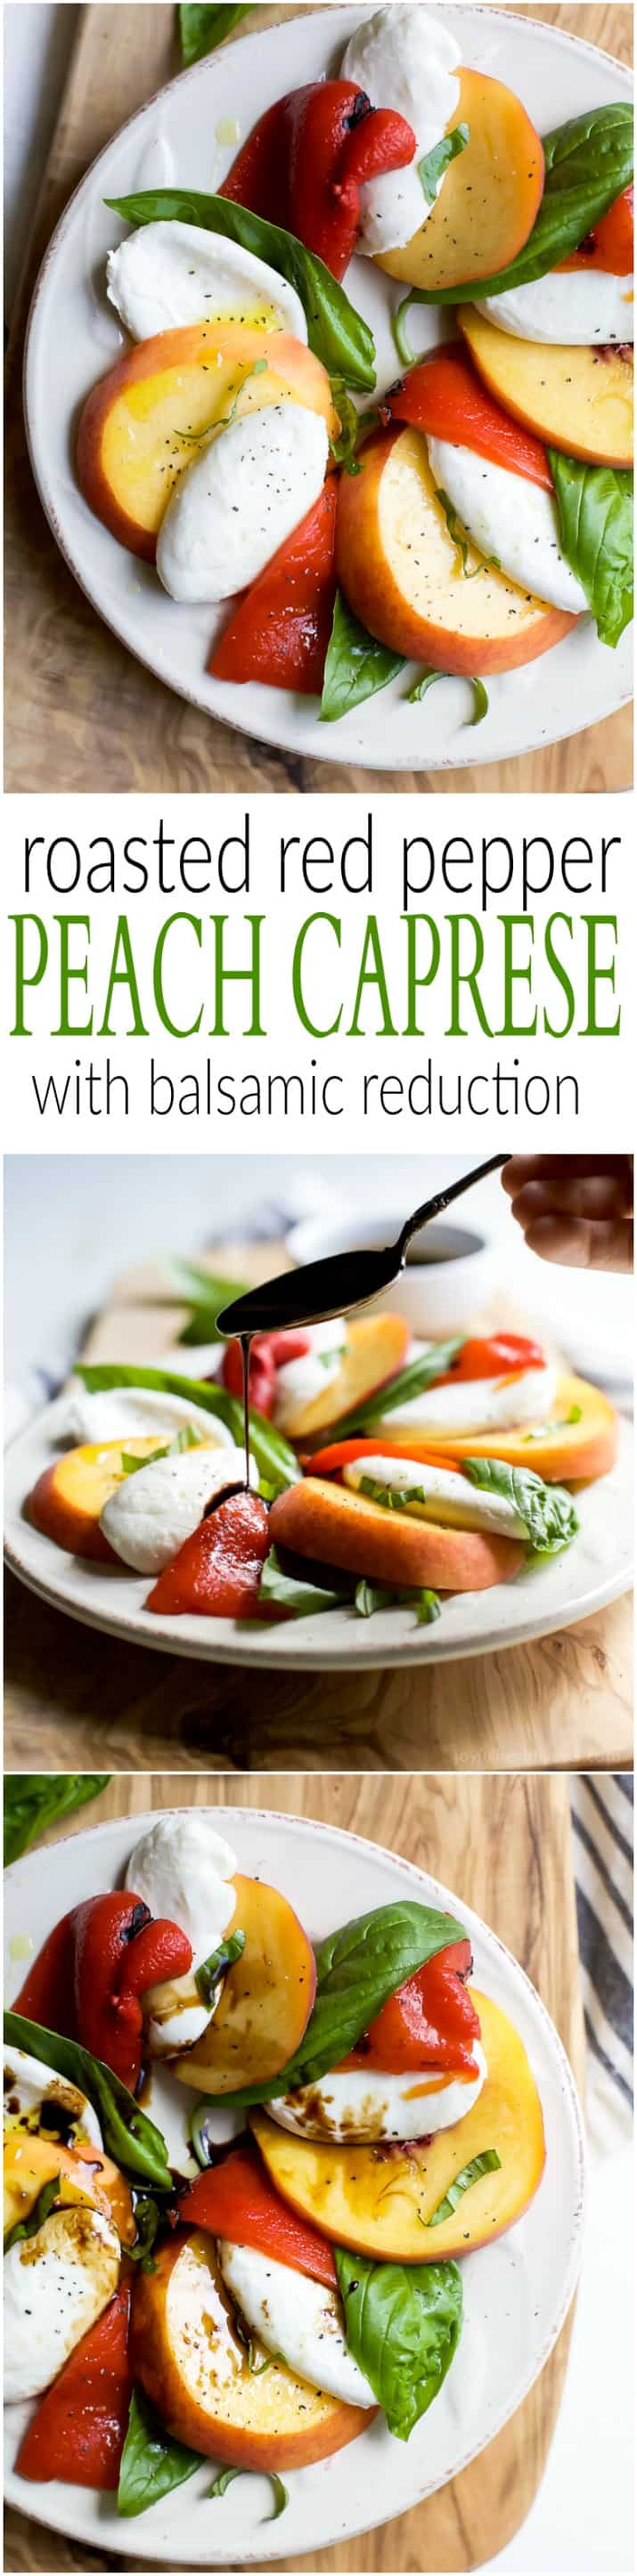 how to make a balsalmic reduction